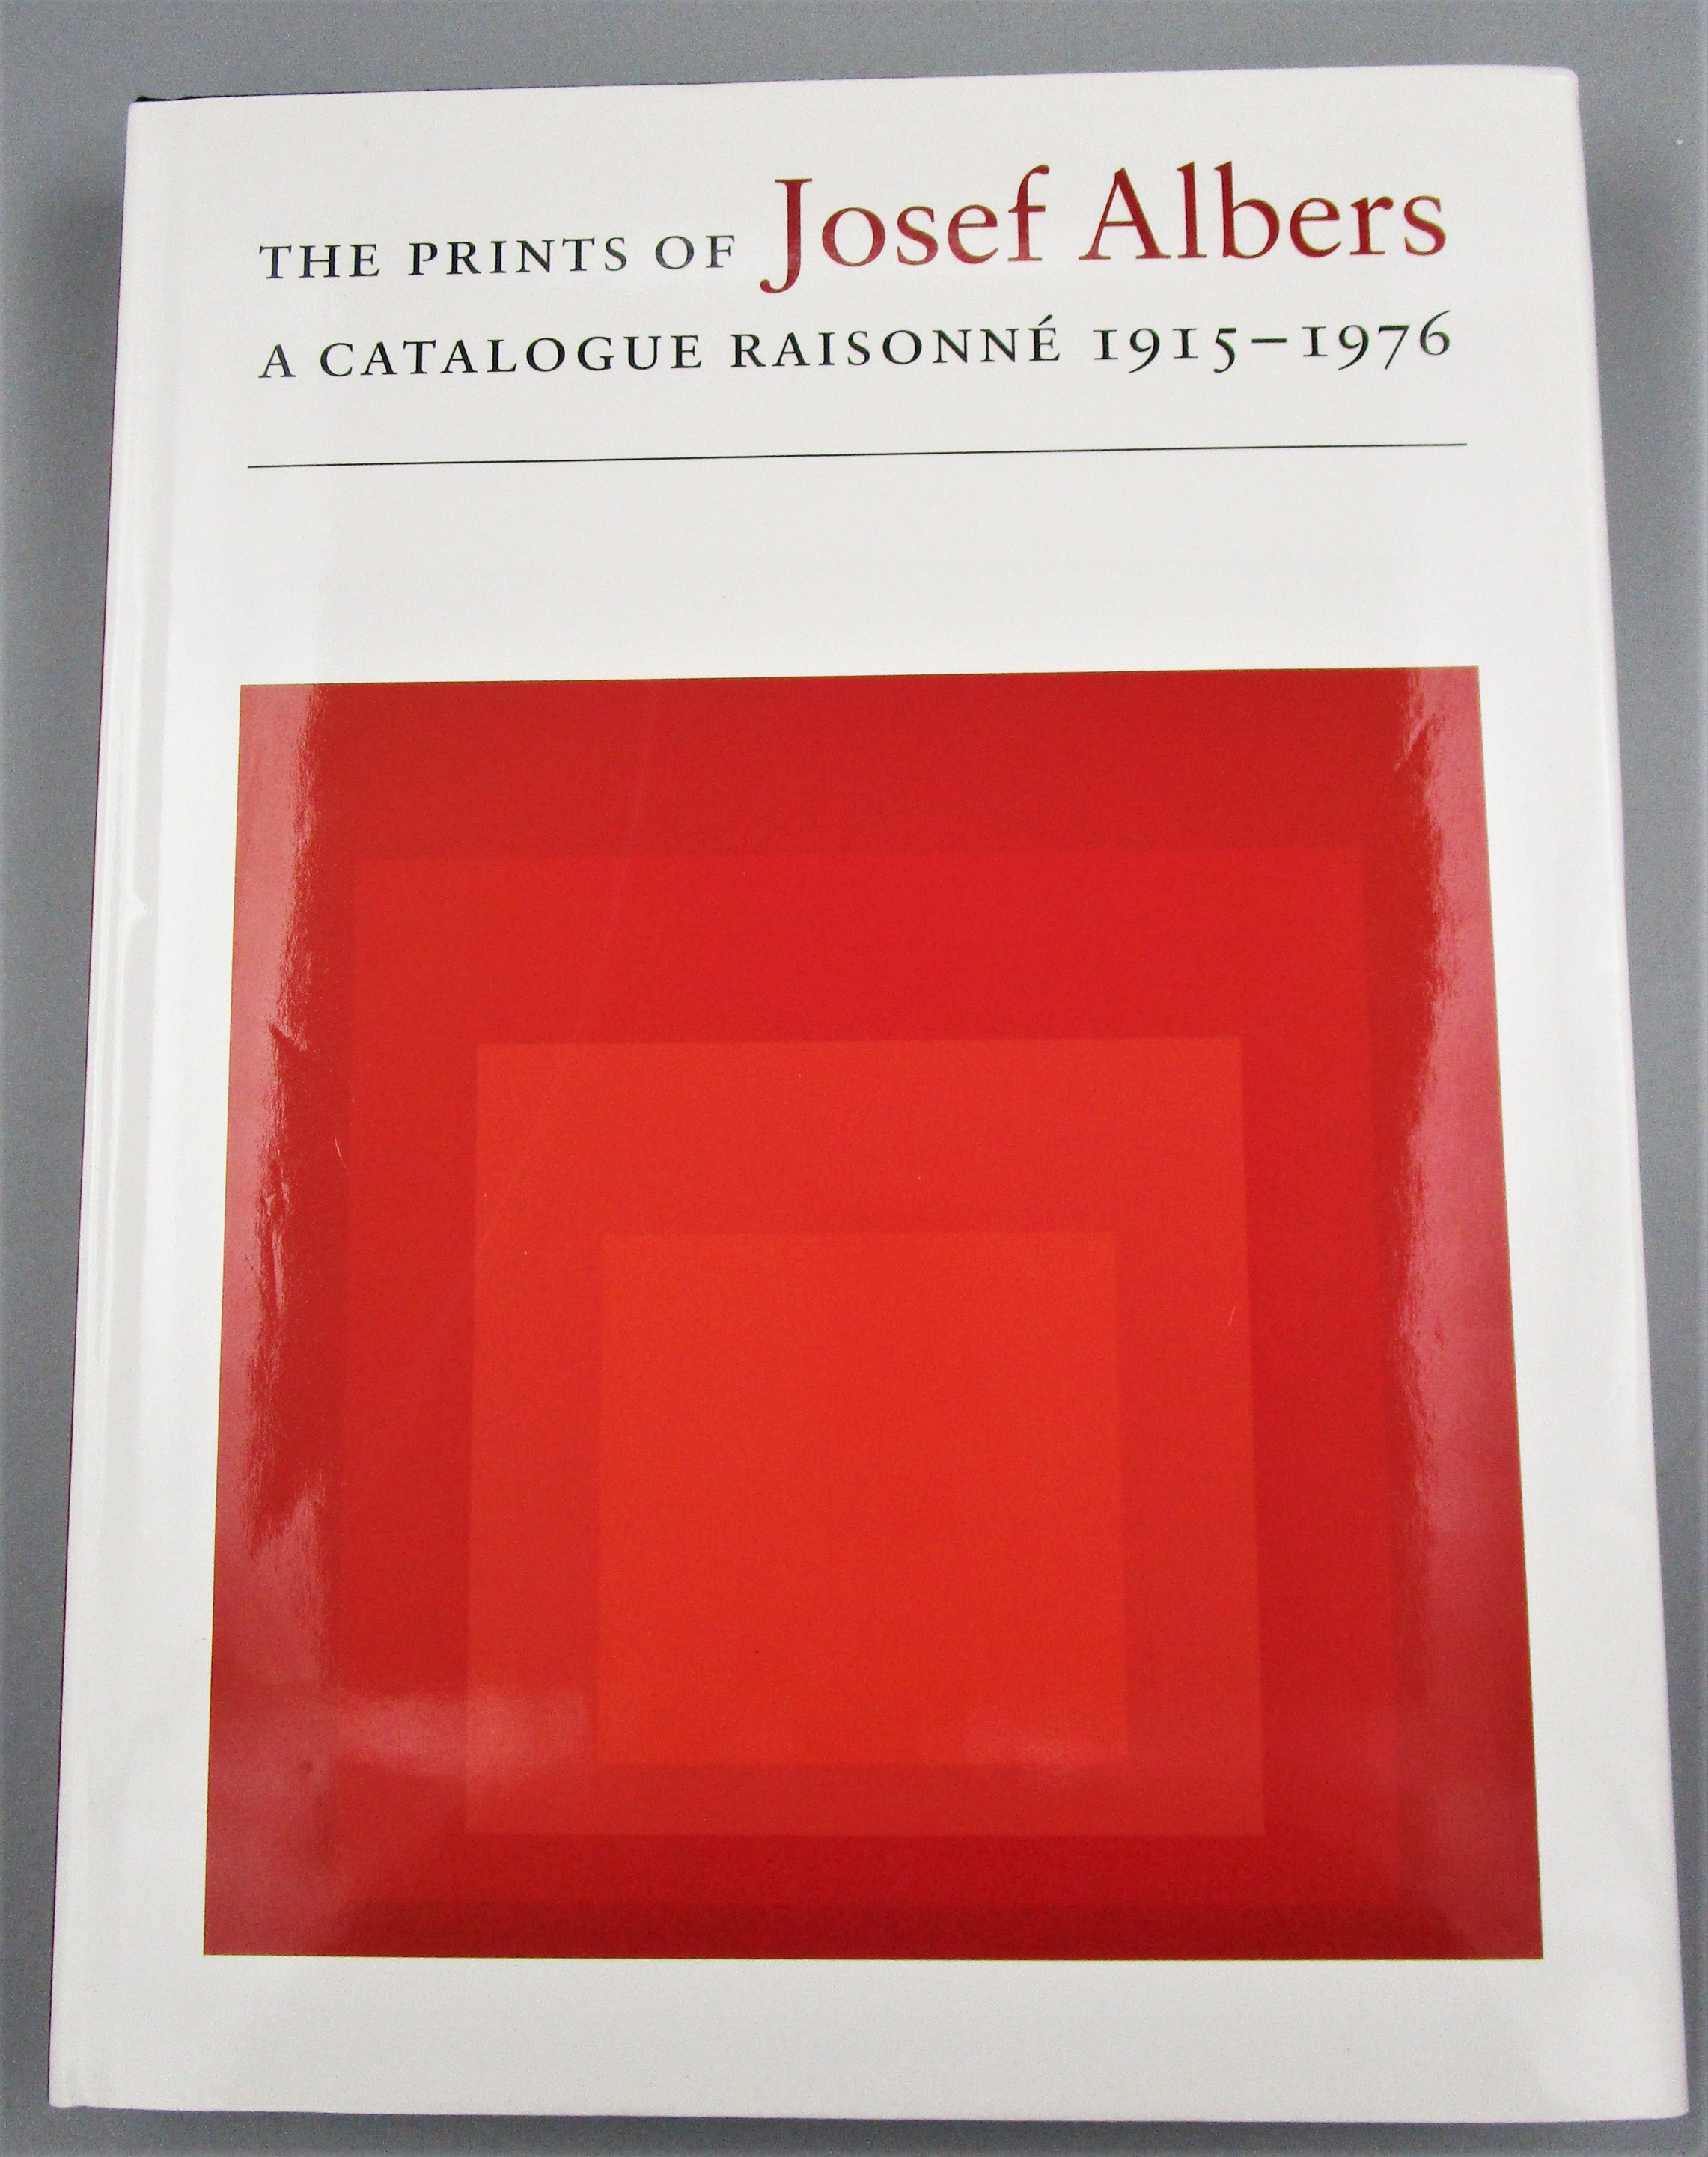 THE PRINTS OF JOSEF ALBERS: A CATALOGUE RAISONNE 1915-1976, by Brenda Danilowitz - 2001 First Edition